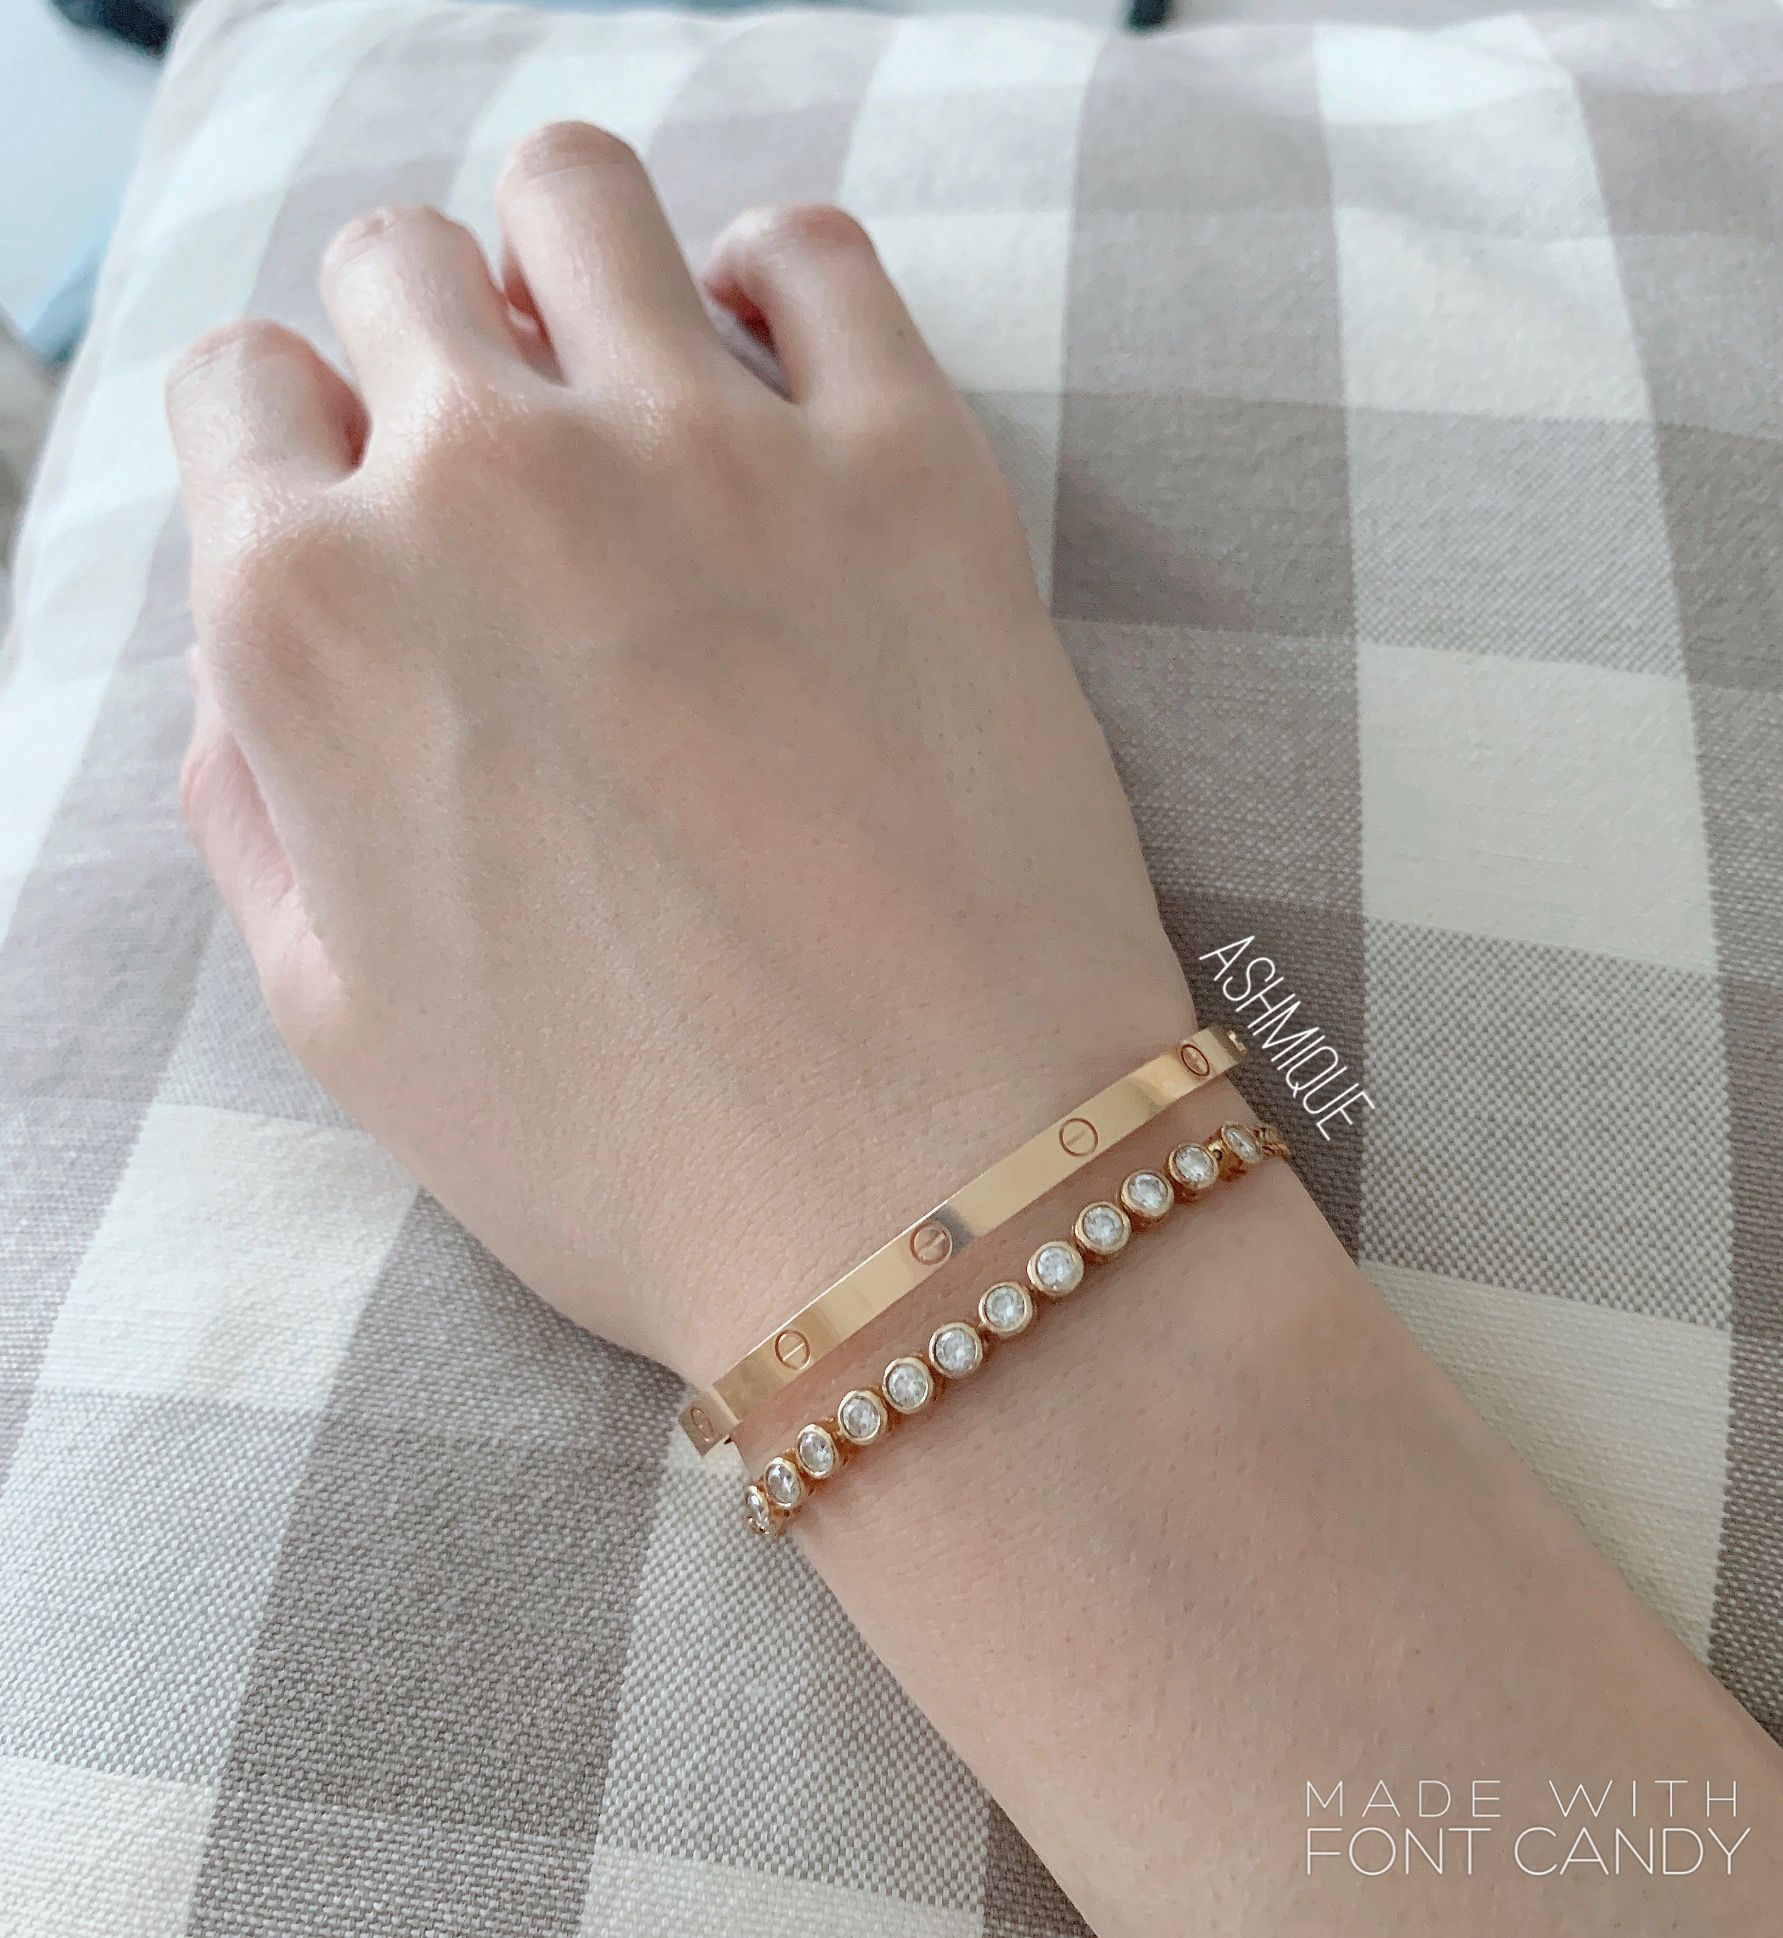 Pin On Watches And Jewellery